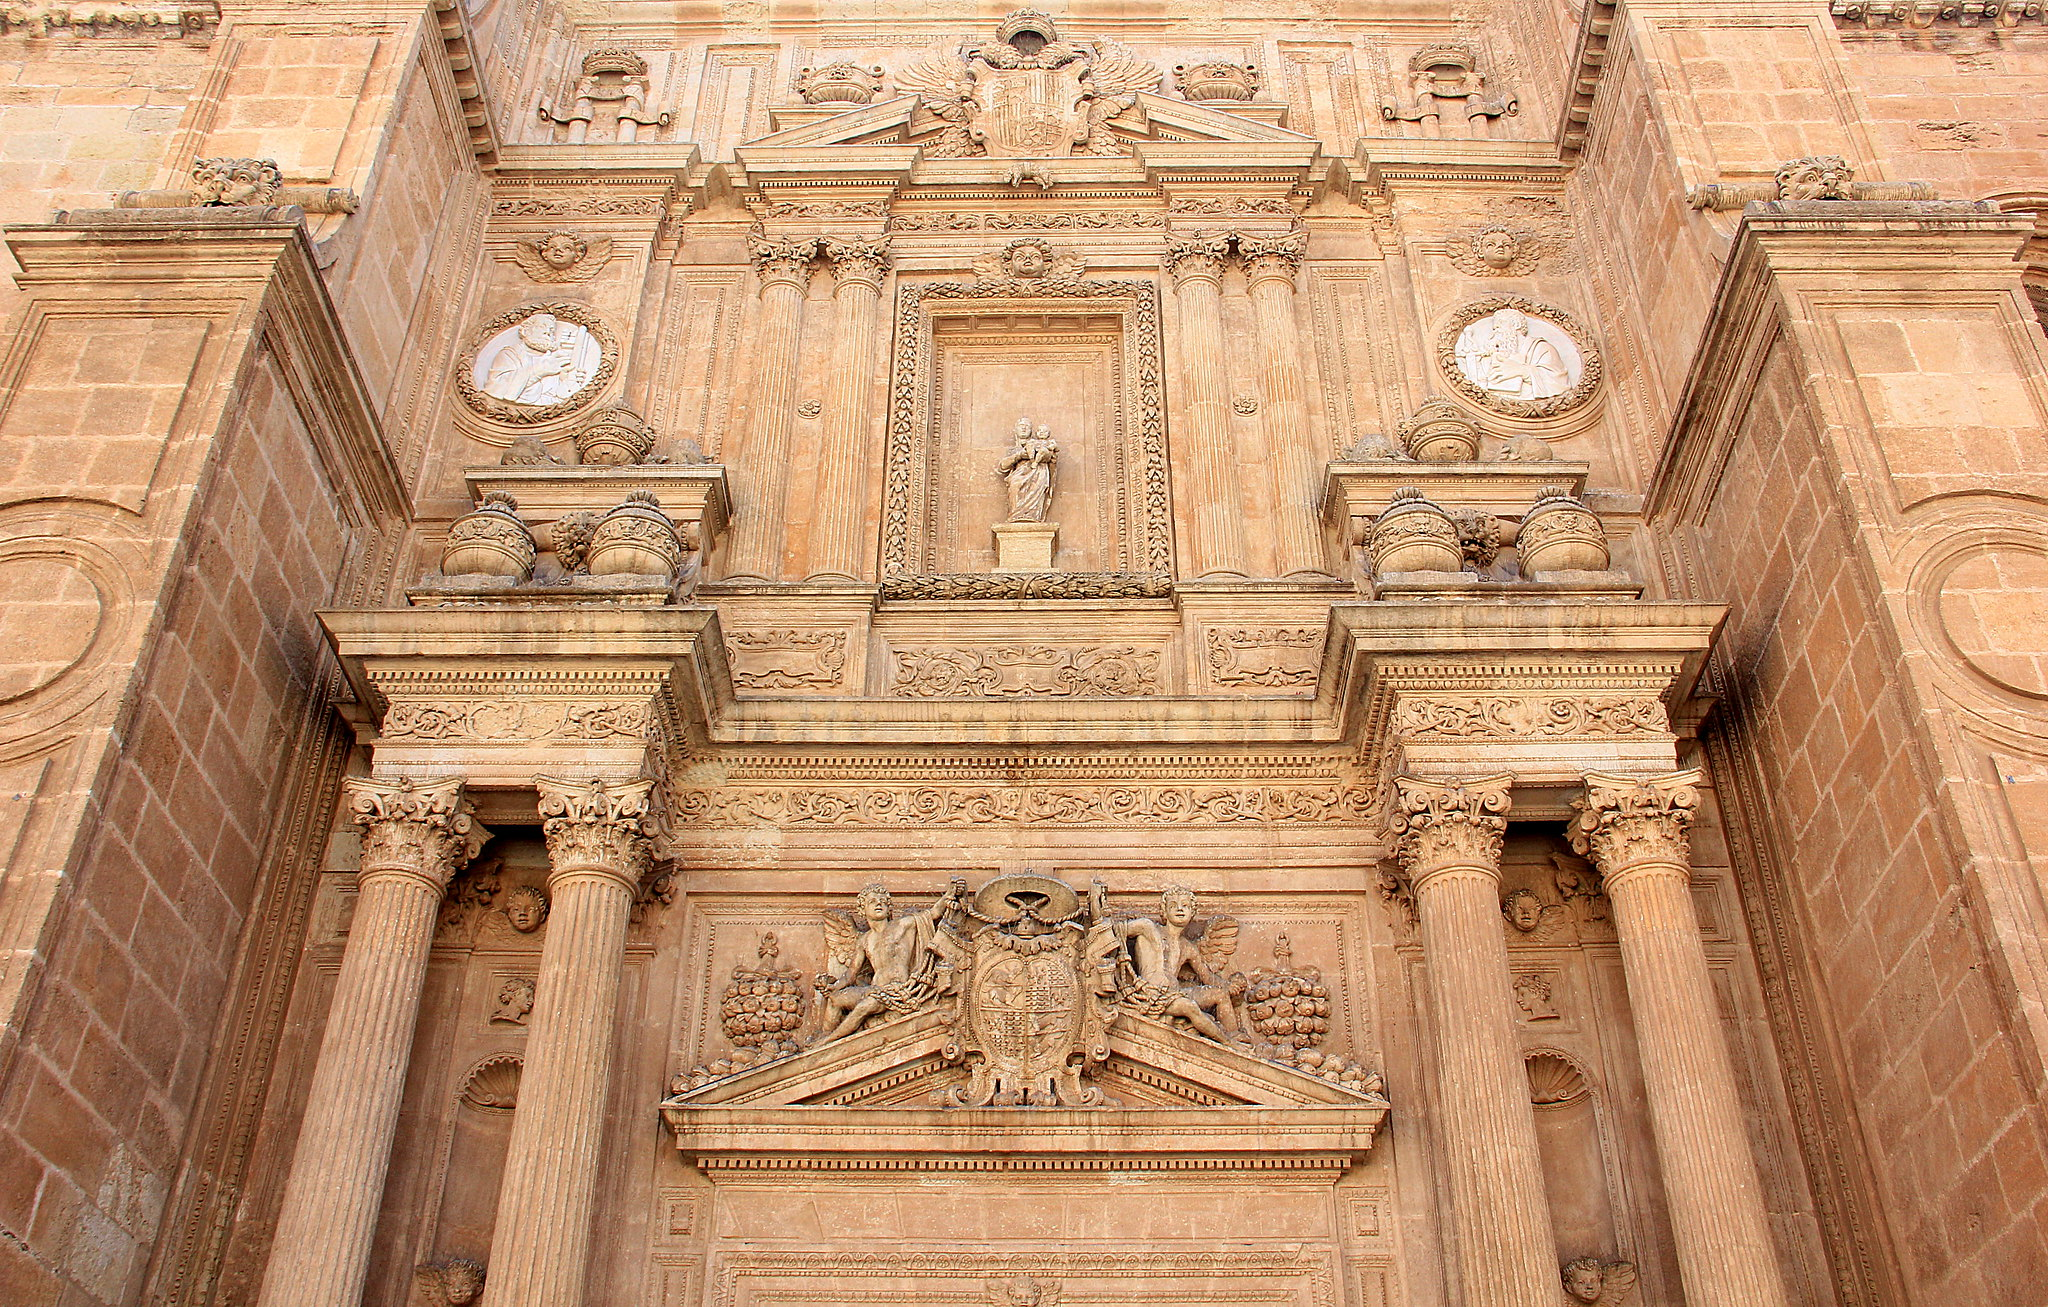 Almeria cathedral is beautiful